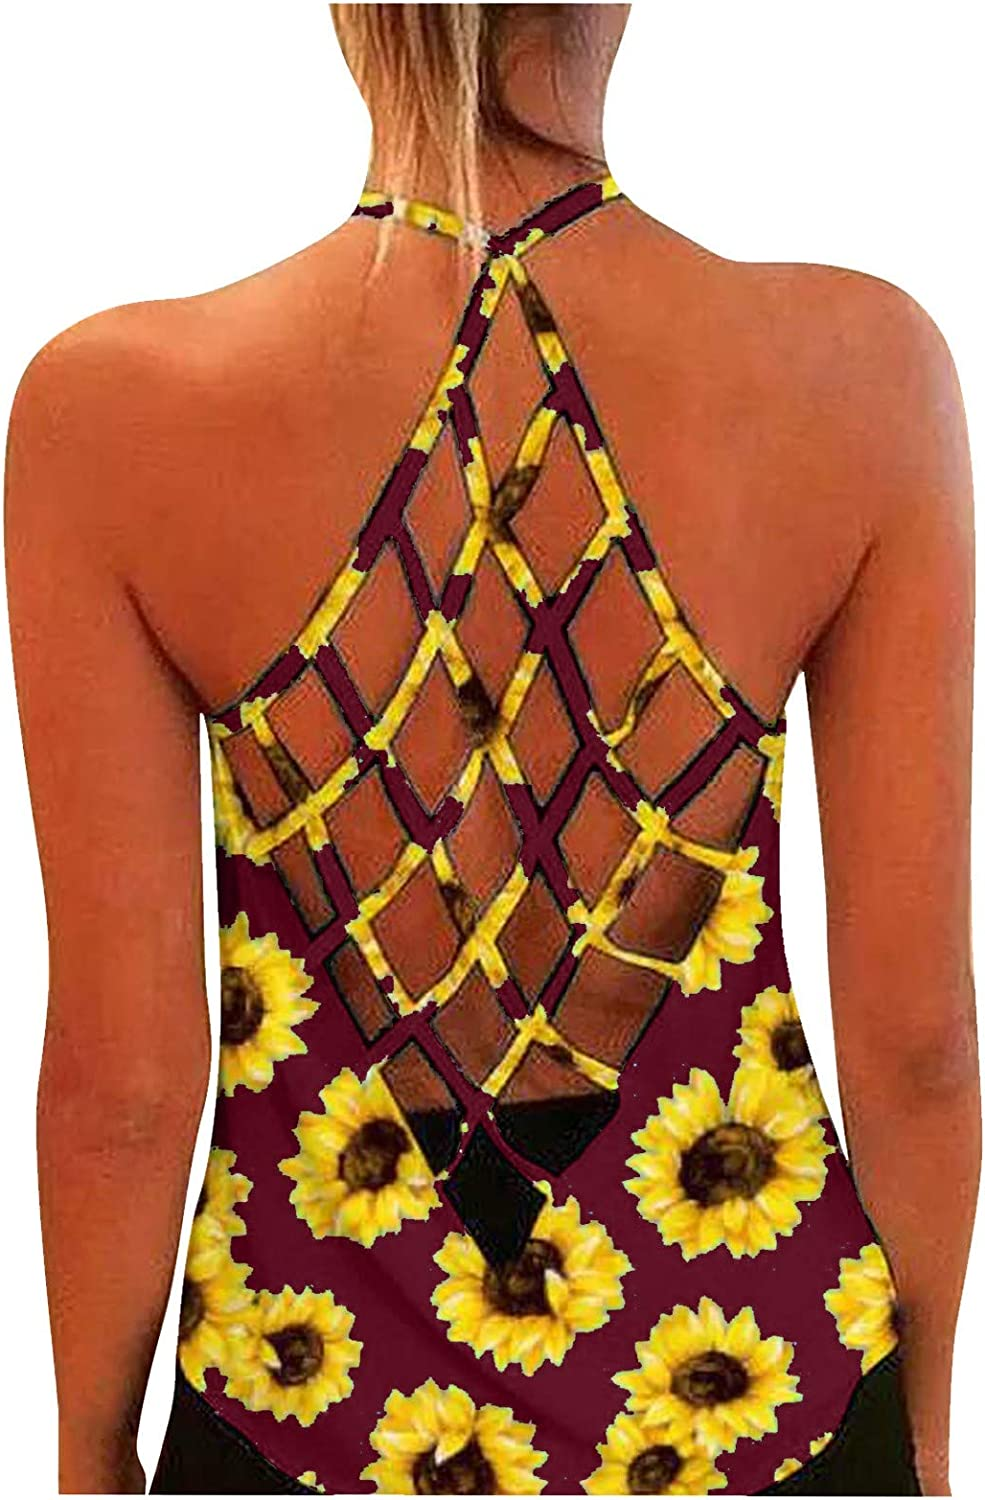 Gemira Open Back Tank Popular overseas Philadelphia Mall Tops for Camisole Women Hollow Sexy Sh Out